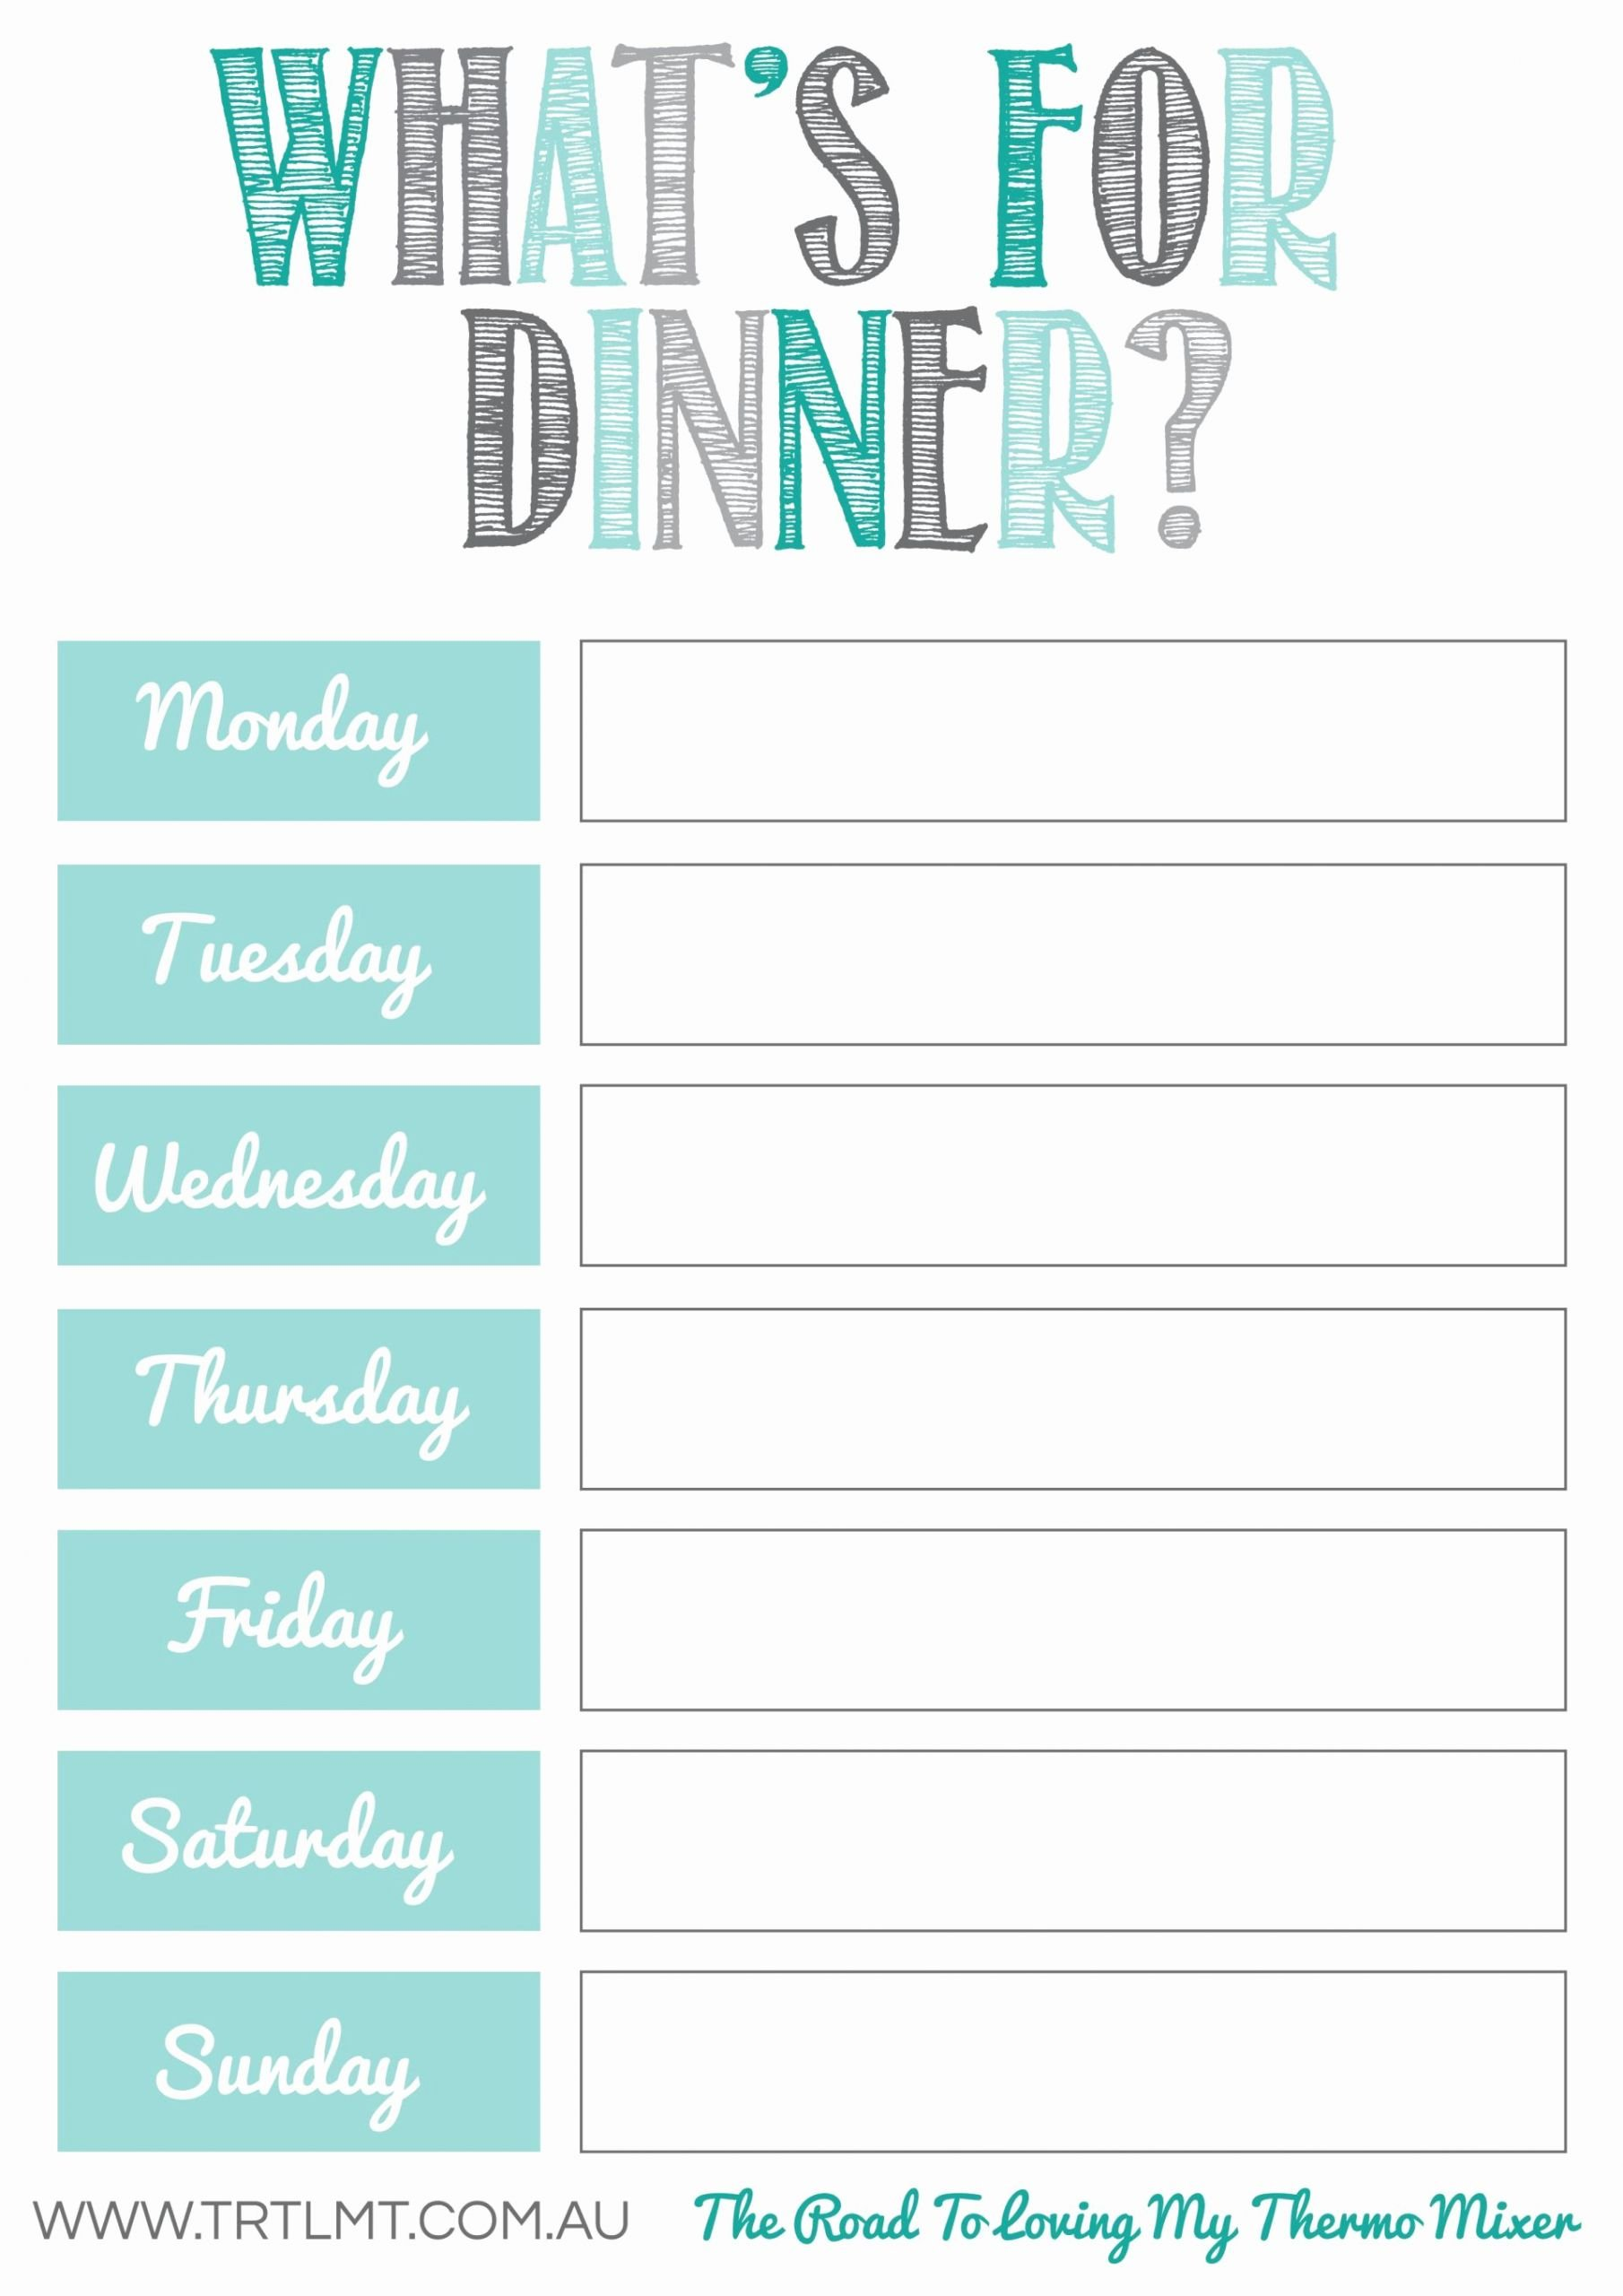 Two Week Meal Planner Template Best Of What S for Dinner 2 Fb organization